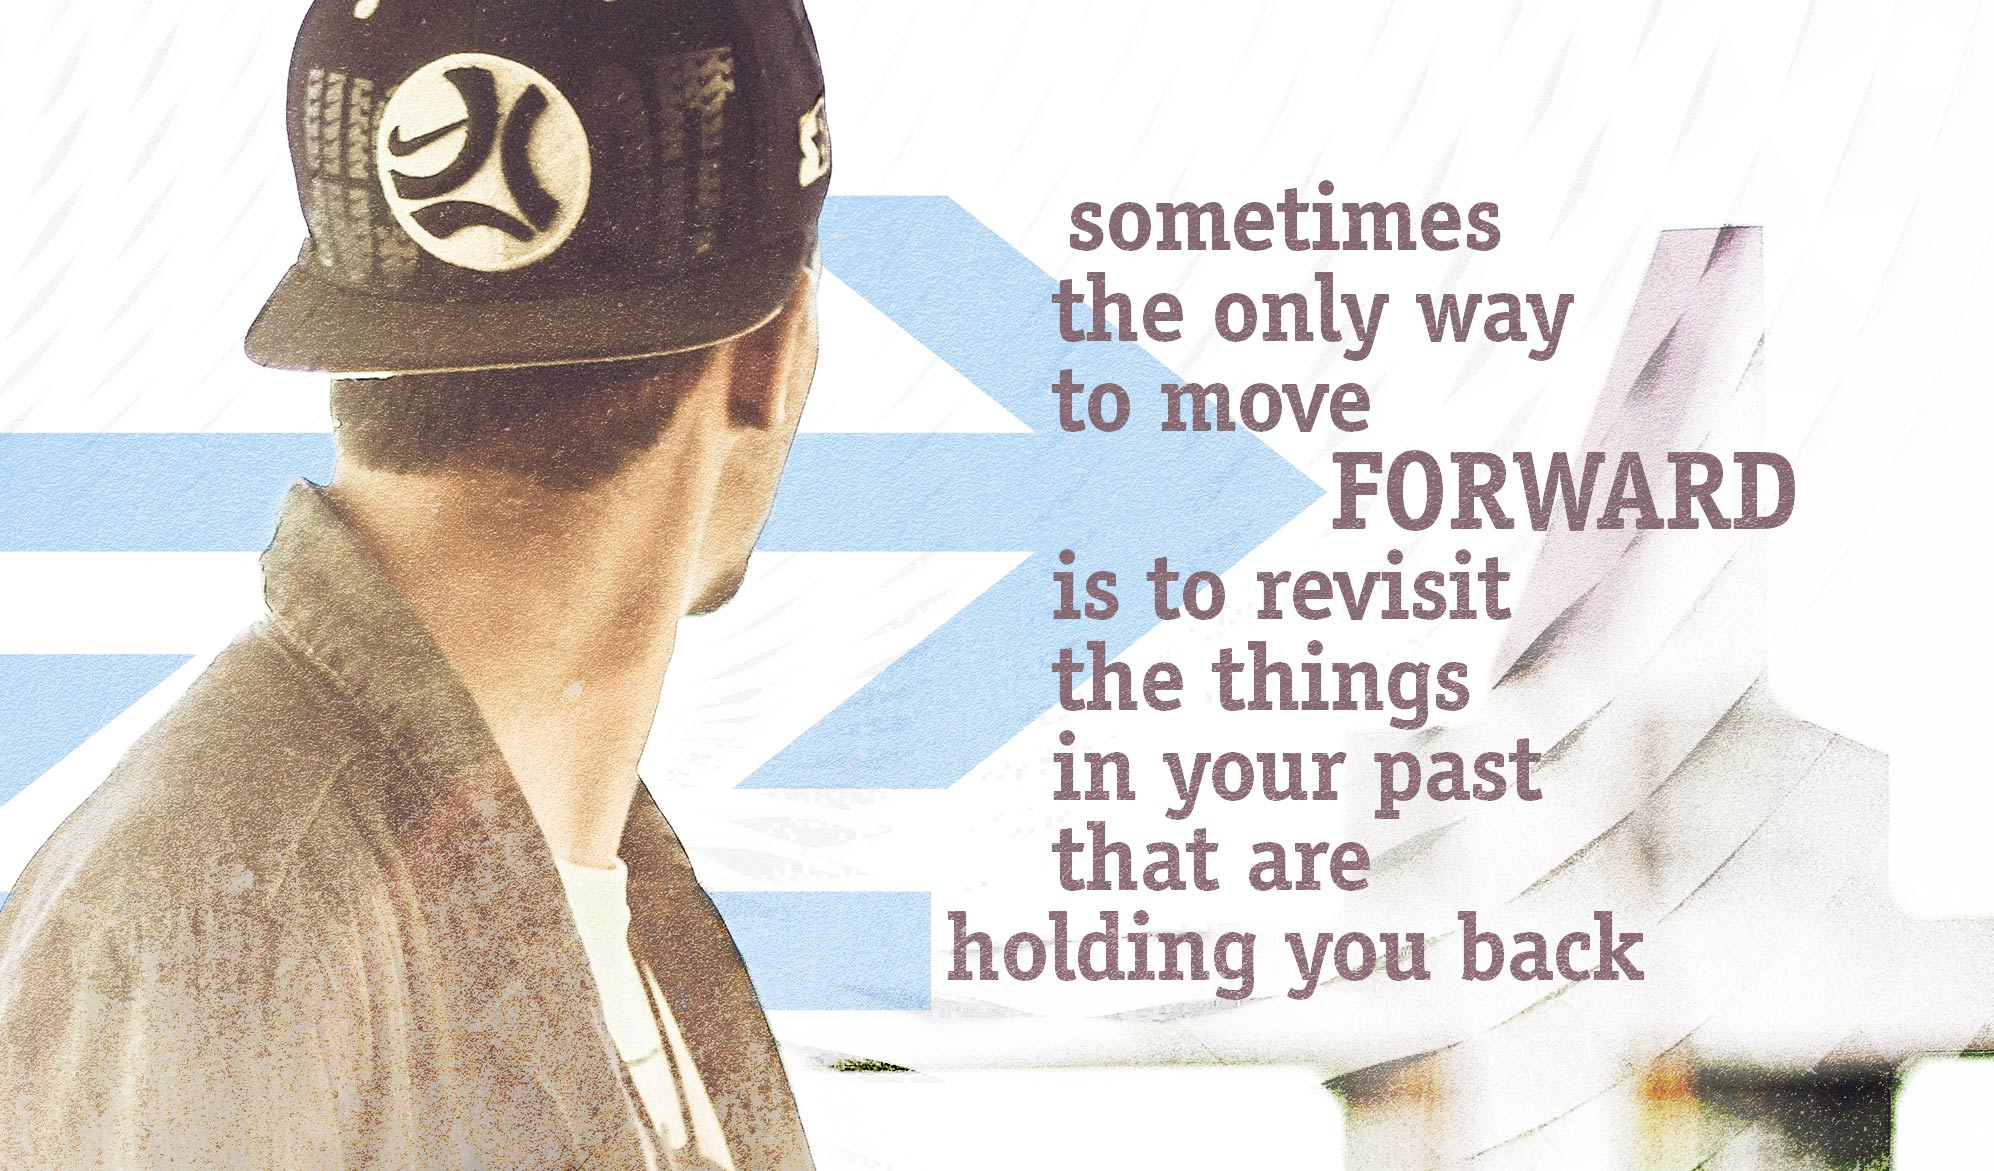 daily inspirational quote image: a man , wearing a baseball hat backwards, it looking behind his shoulder